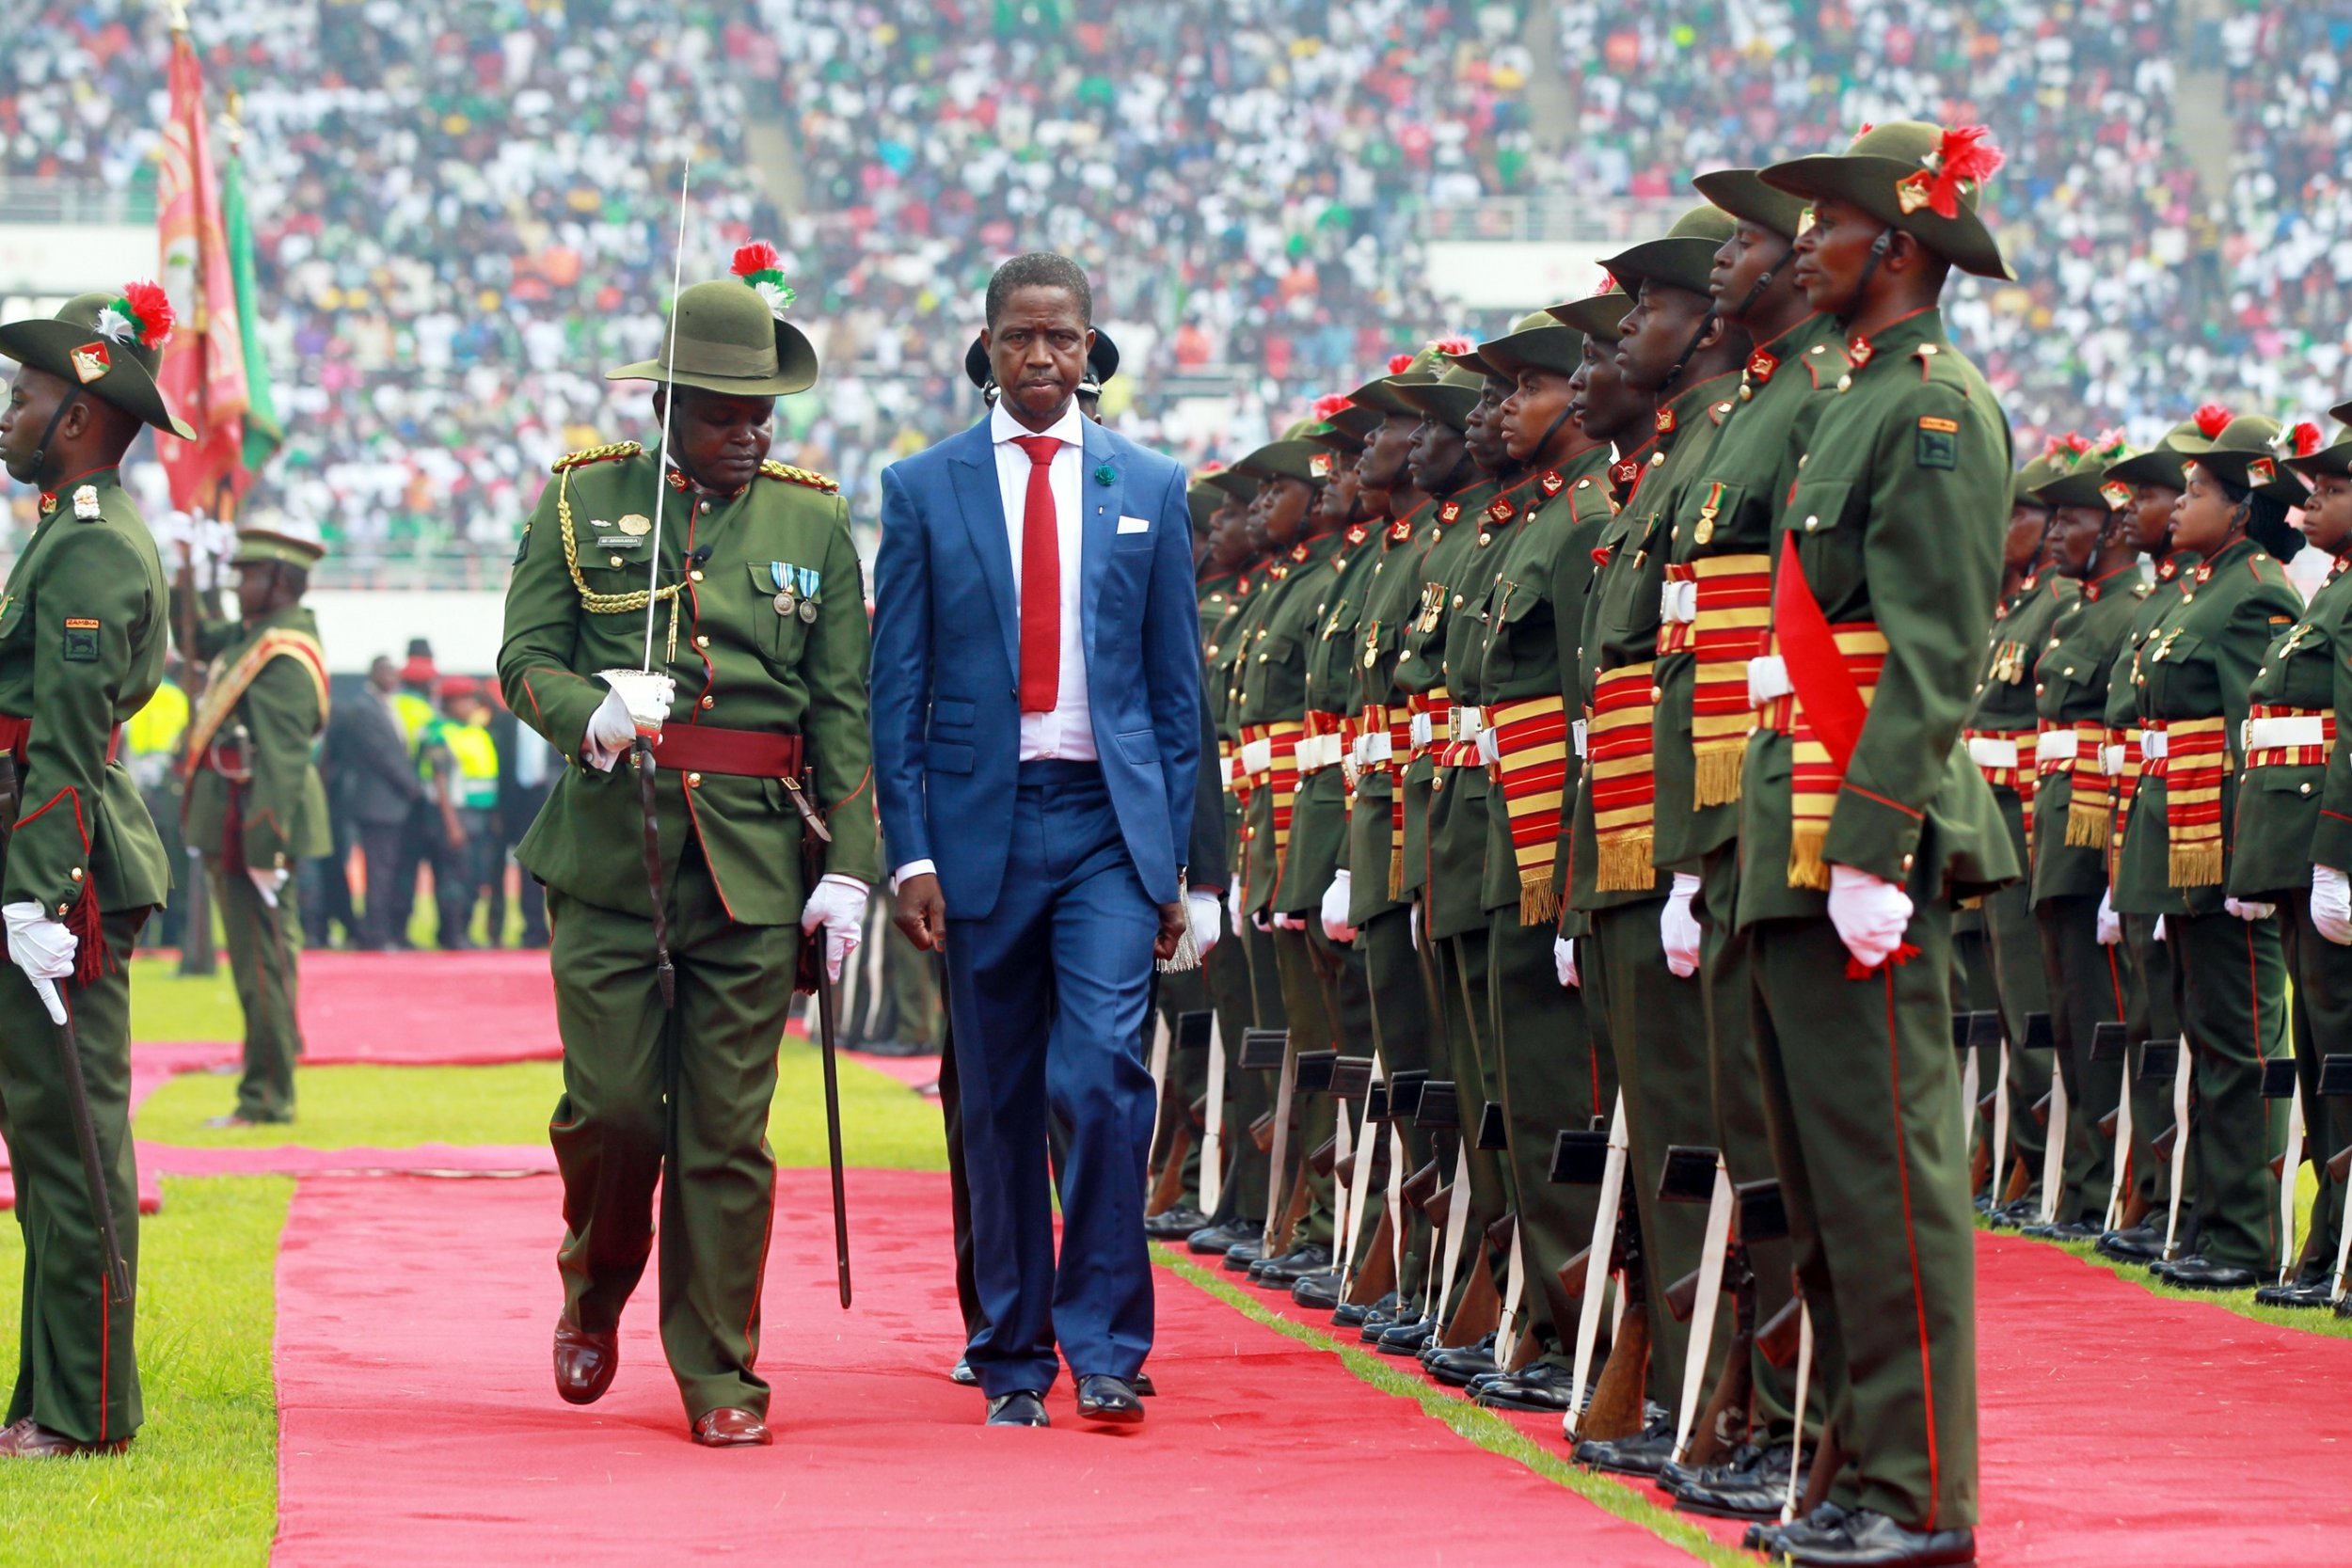 Zambia's president Edgar Lungu at his swearing-in ceremony.